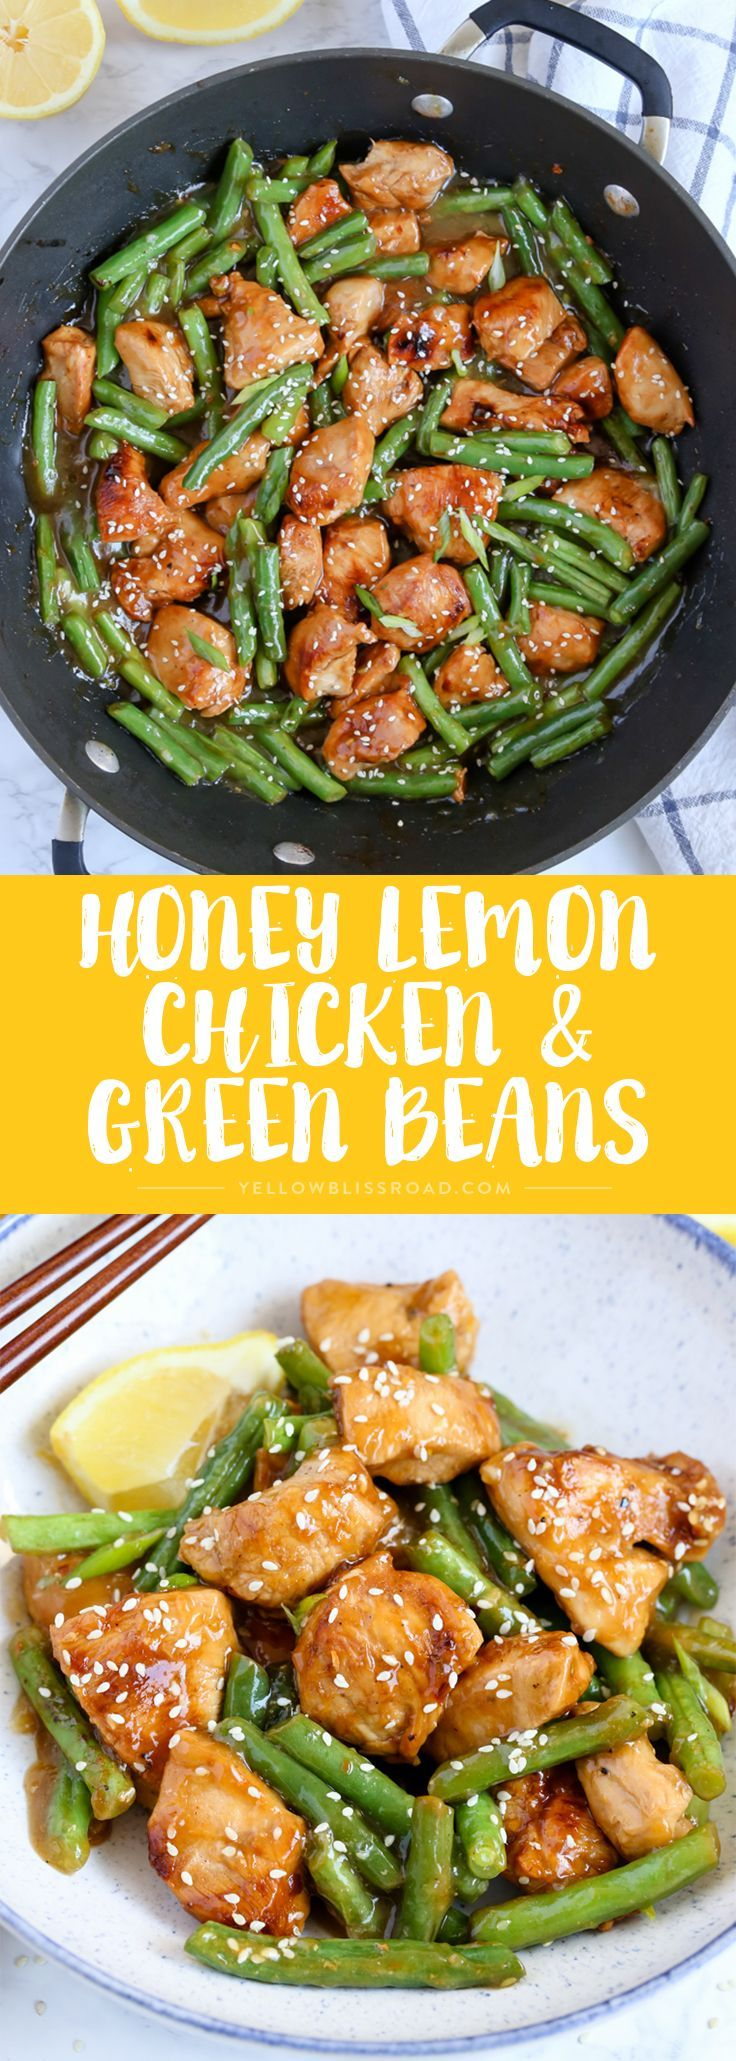 This Honey Lemon Chicken and Green Beans is a light and fresh meal with a ton of flavor. Dinner is on the table in just 20 minutes! #fallrecipesdinner